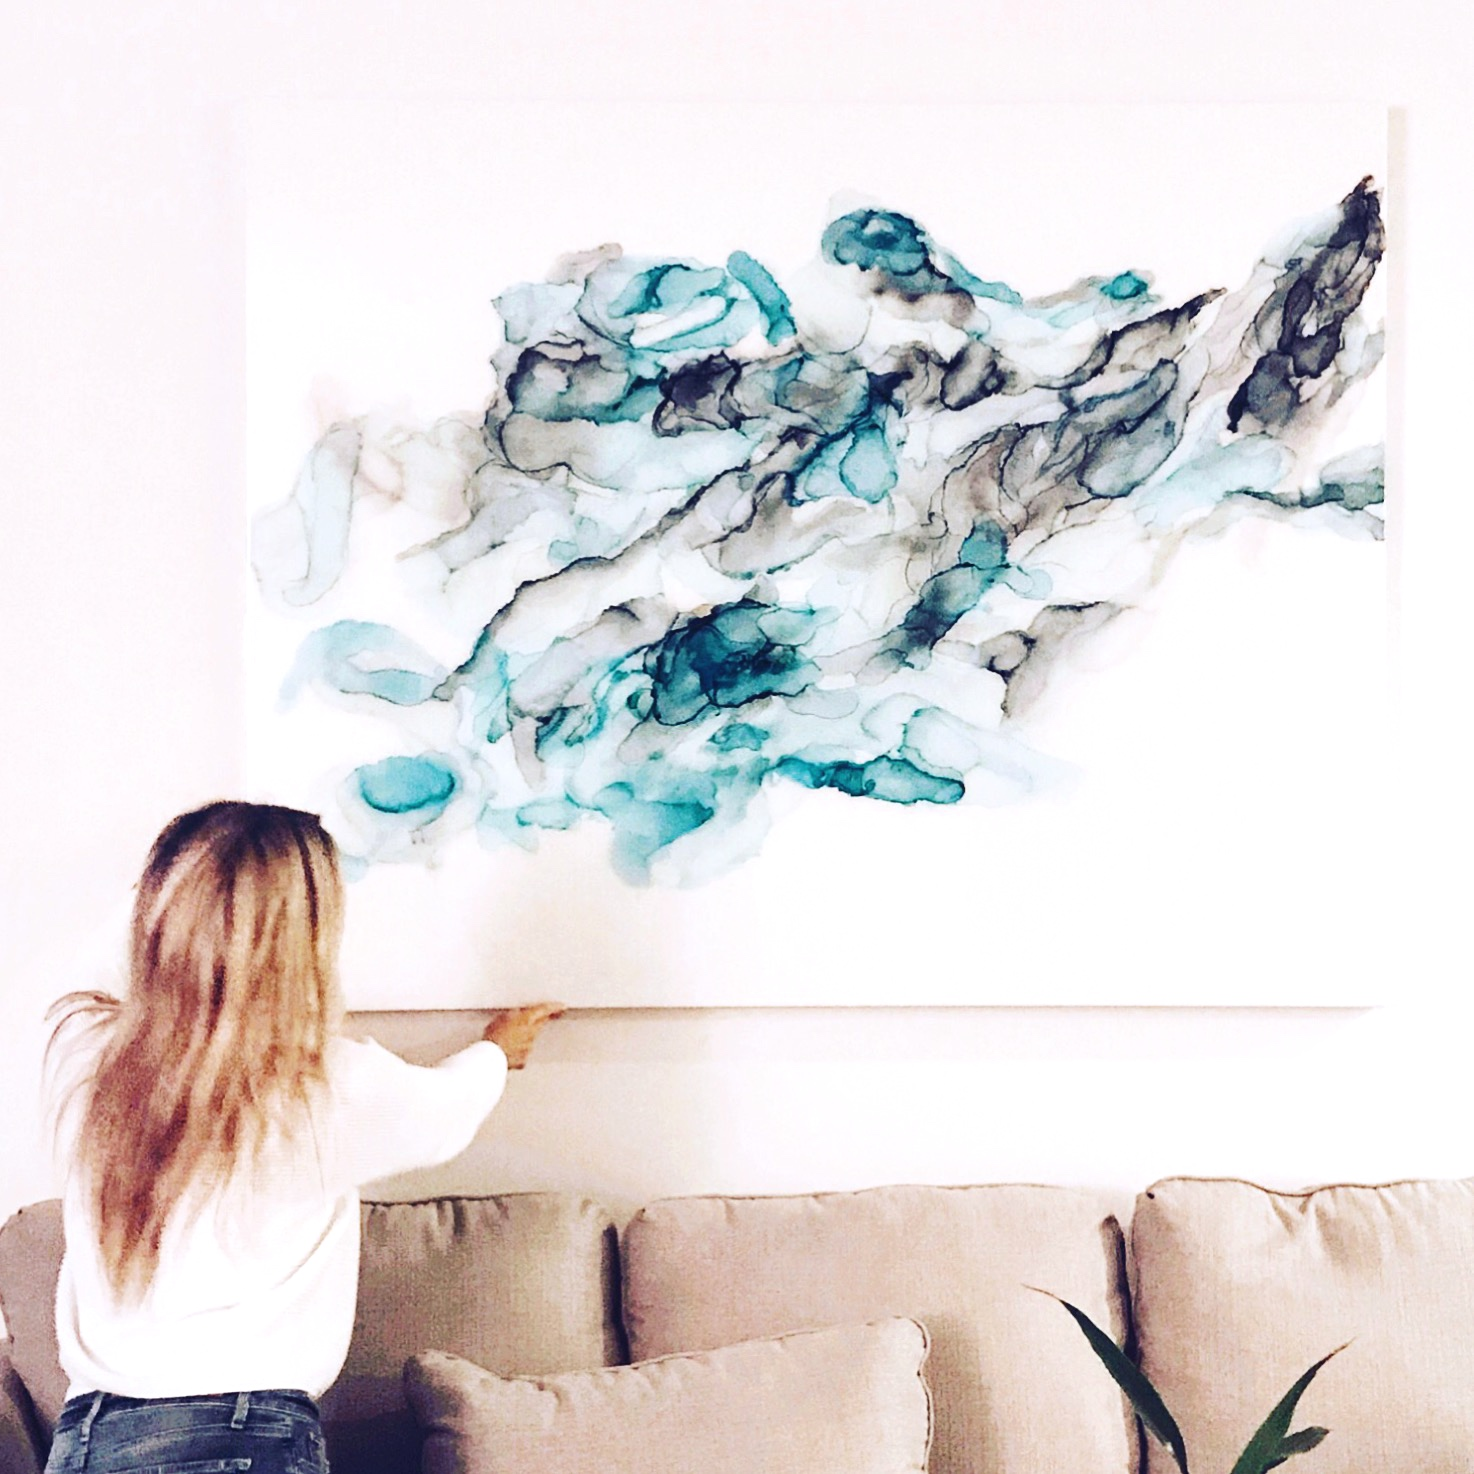 """Sherry Michelle installing """"Thoughts"""", a special order commission in a client's home 2018  60"""" x 48"""" x 2"""""""